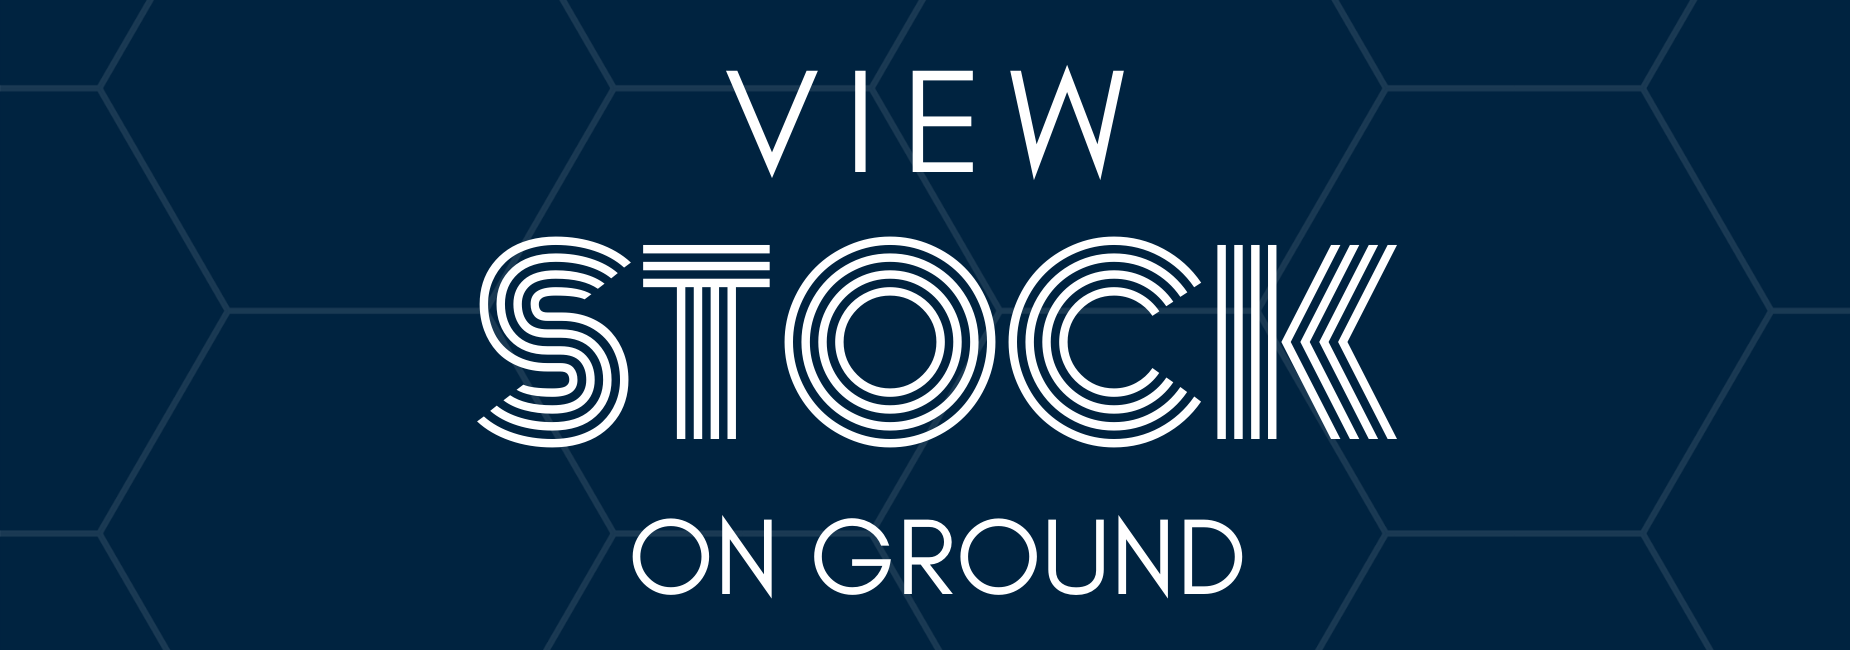 View STOCK on ground